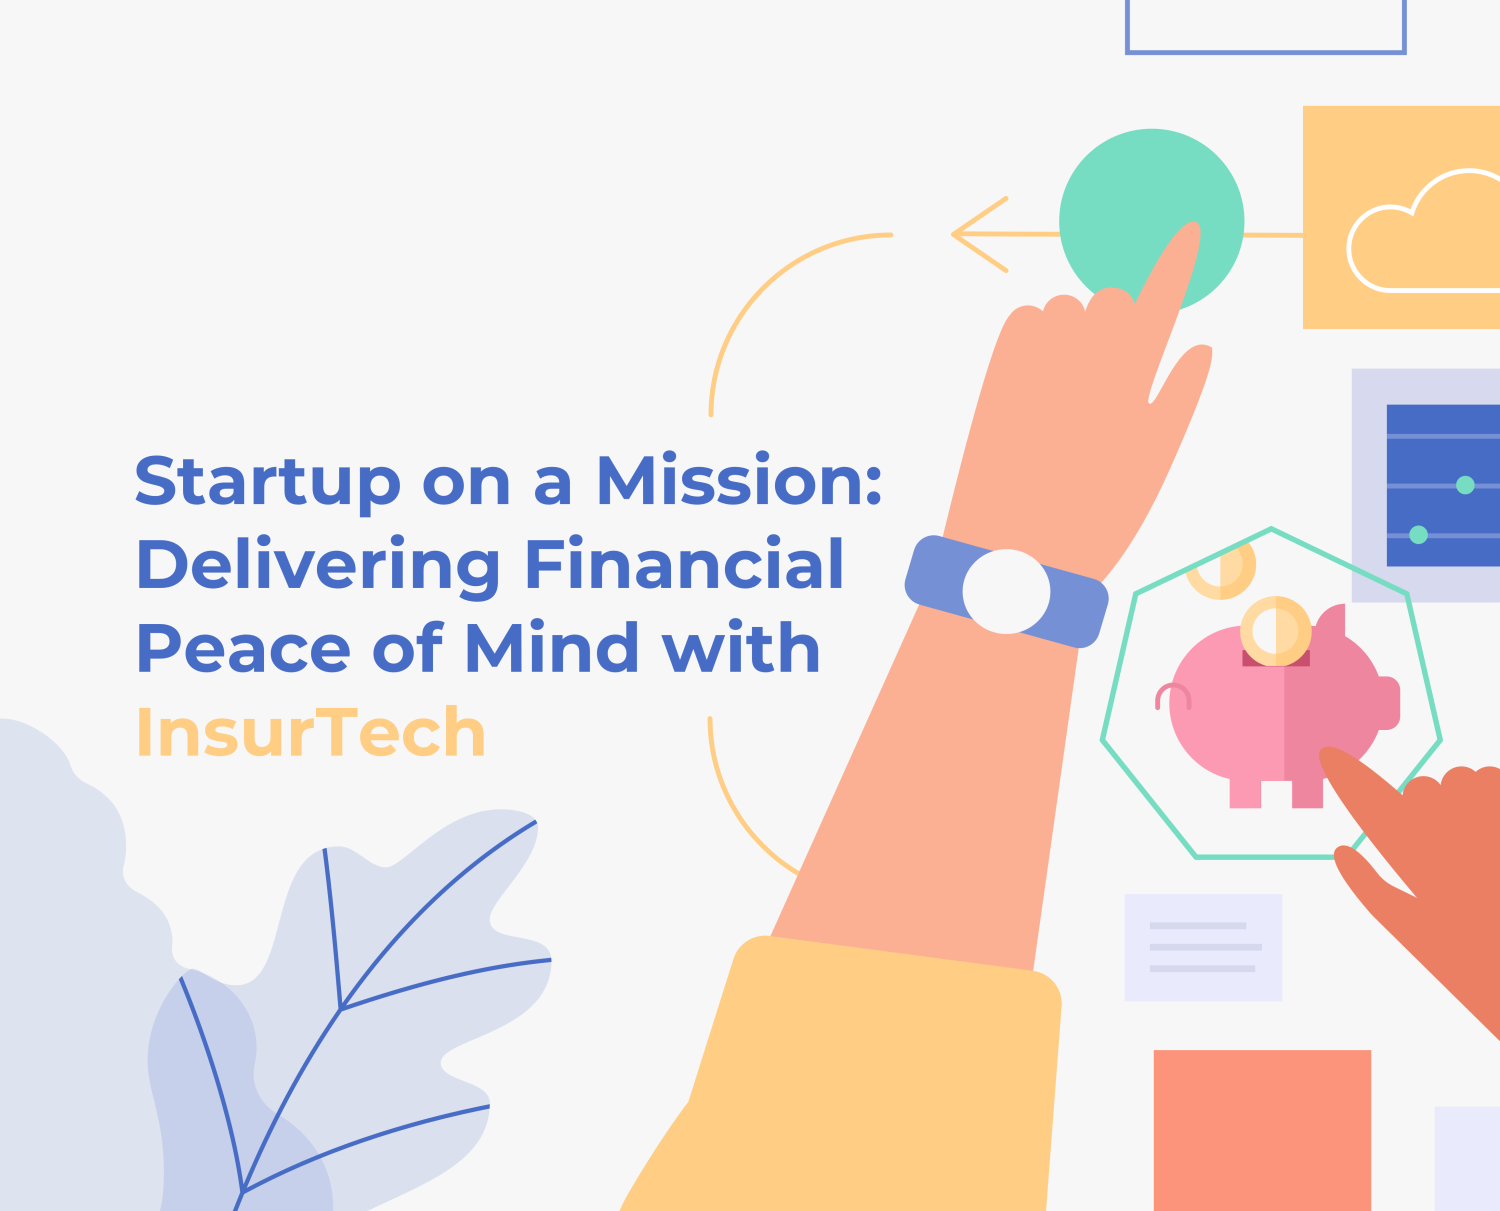 Startup on a Mission: Delivering Financial Peace of Mind  with InsurTech